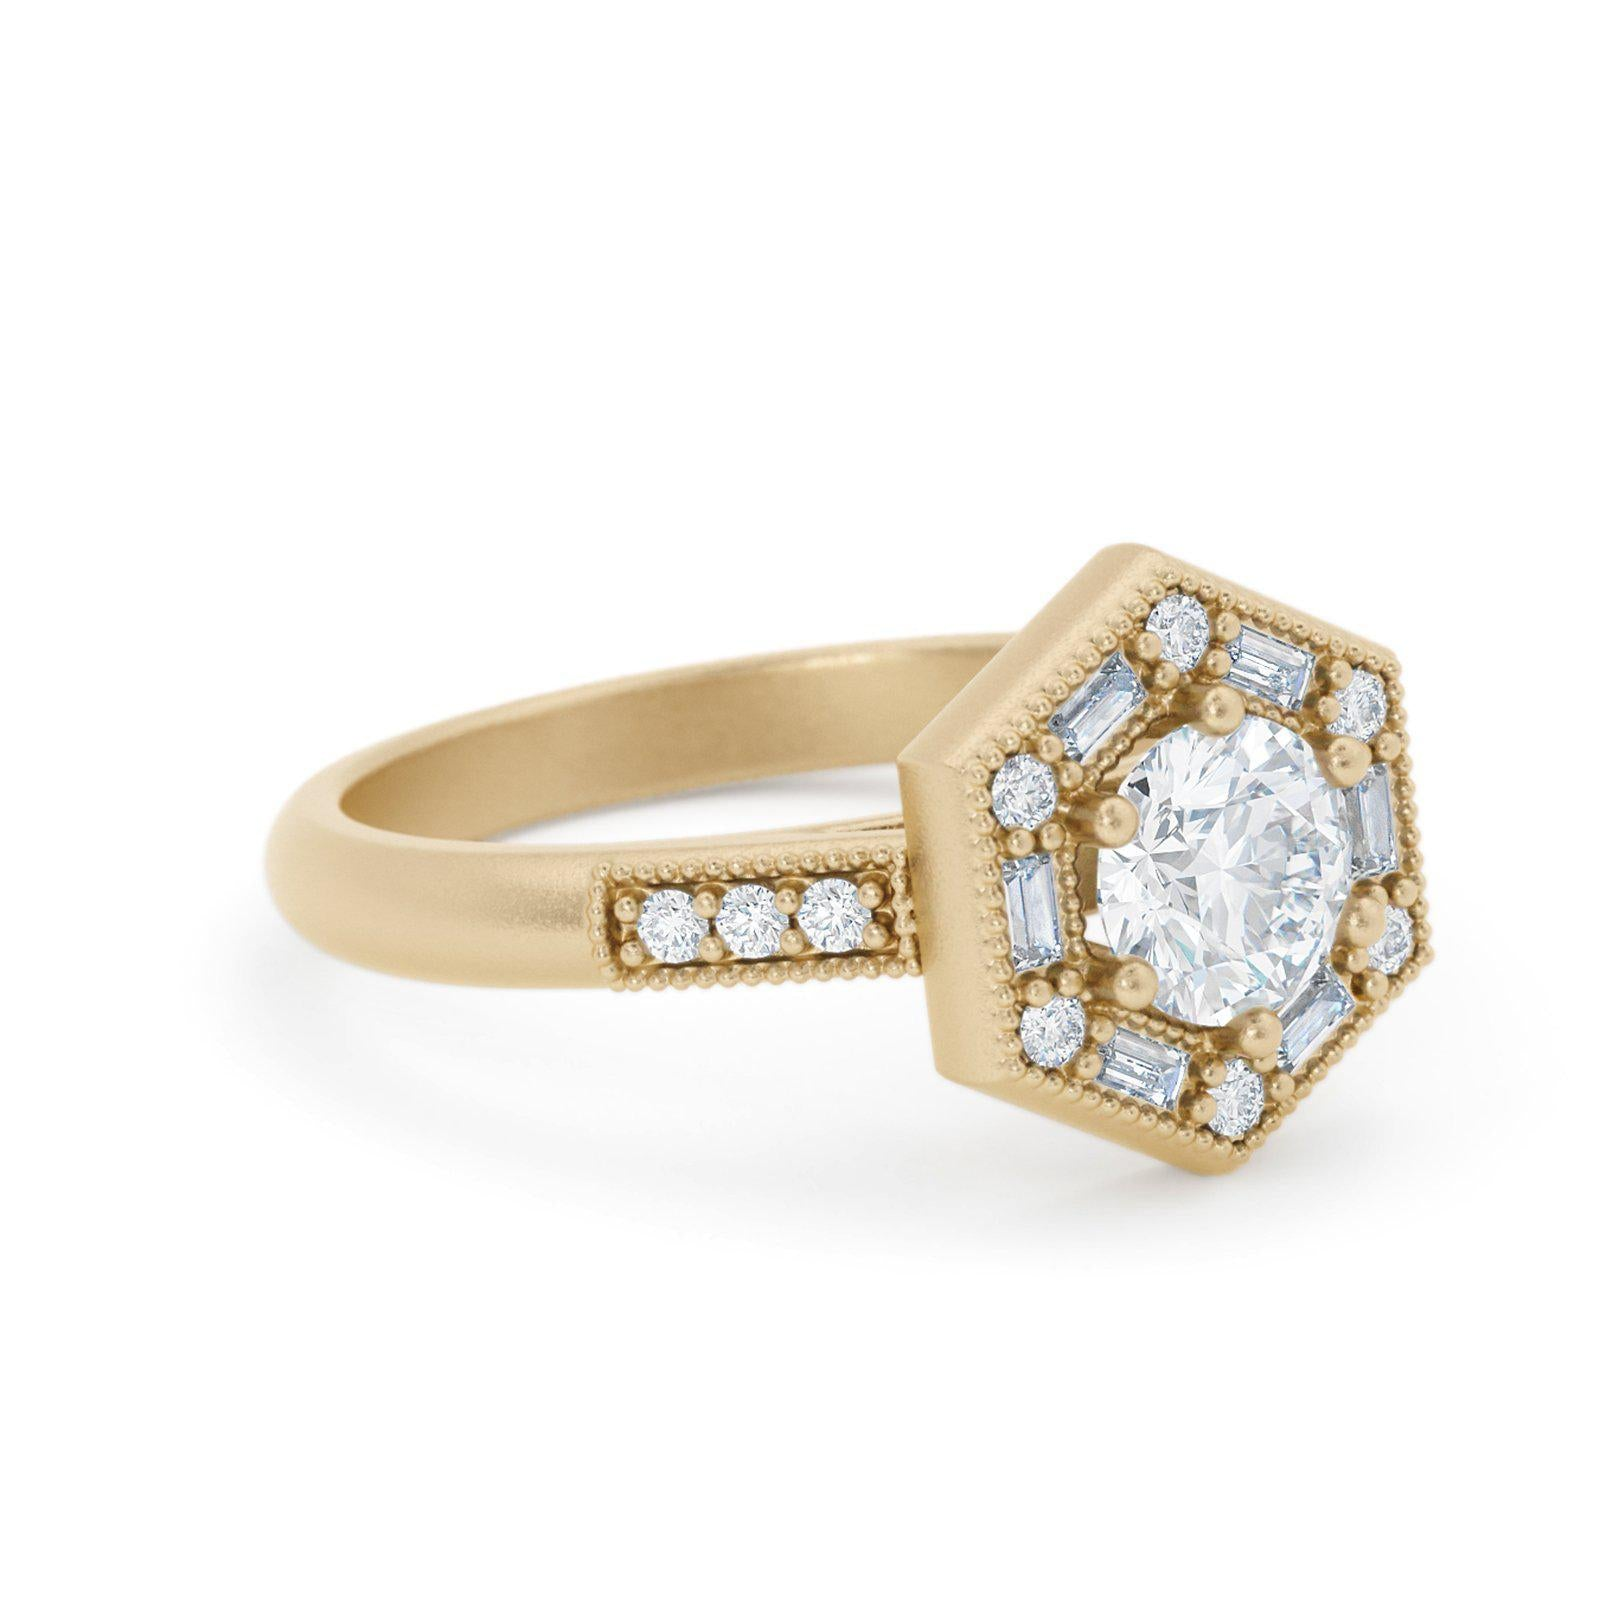 Lorelei Art Deco Diamond Ring Baguette